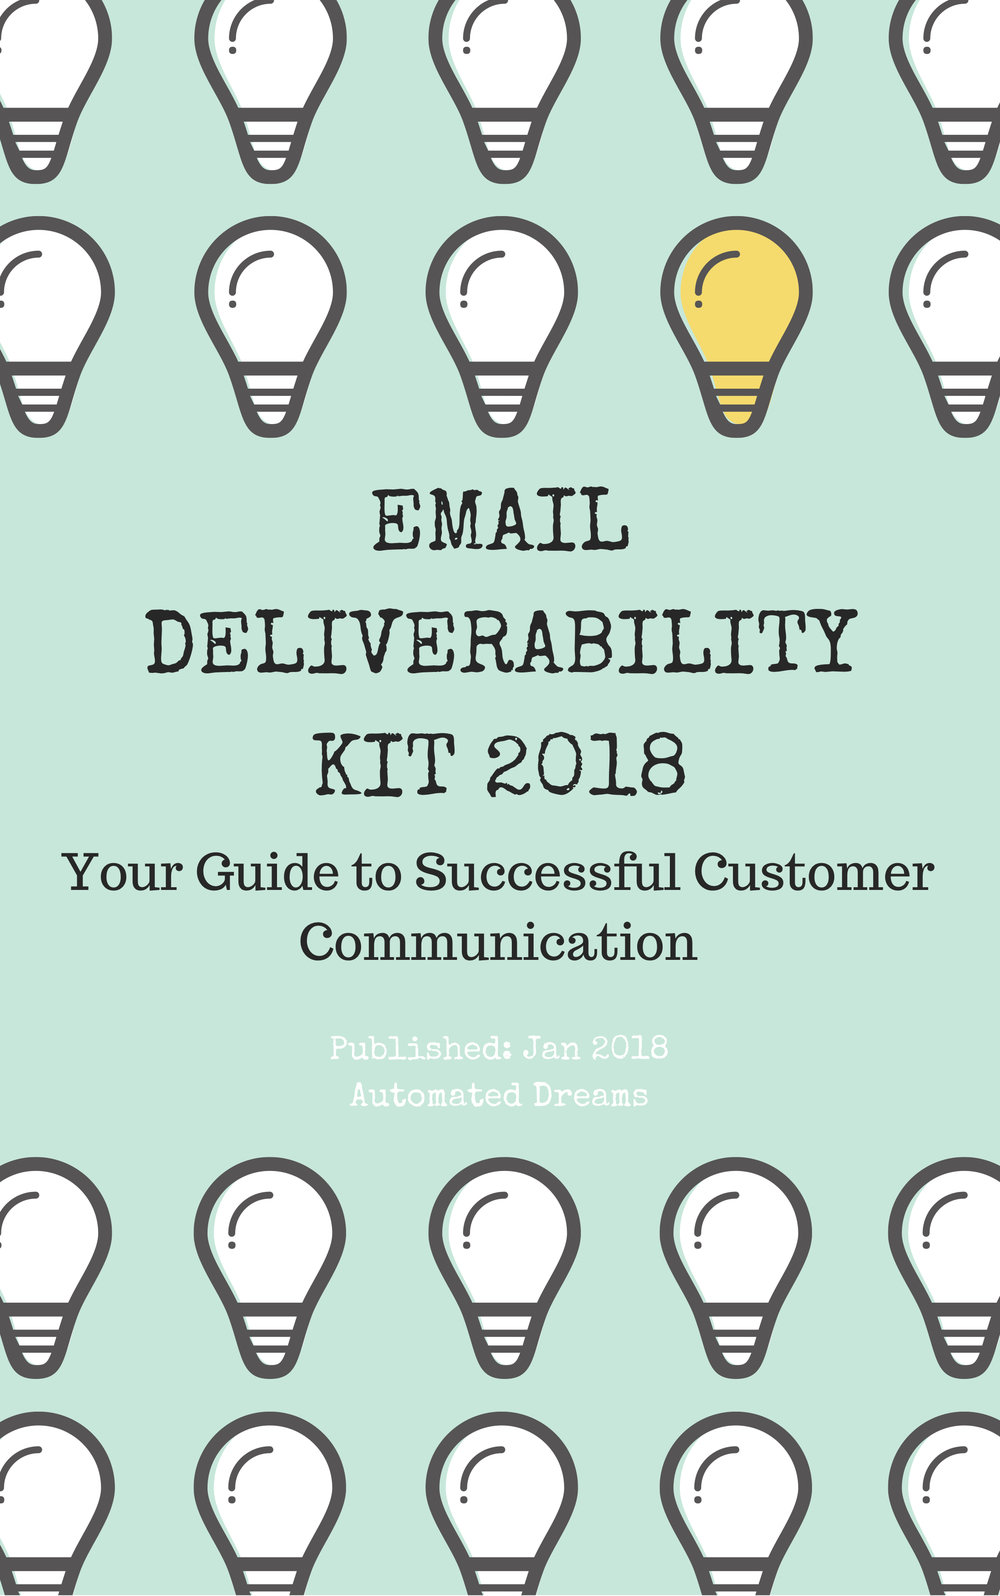 Email Deliverability Report 2018.jpg